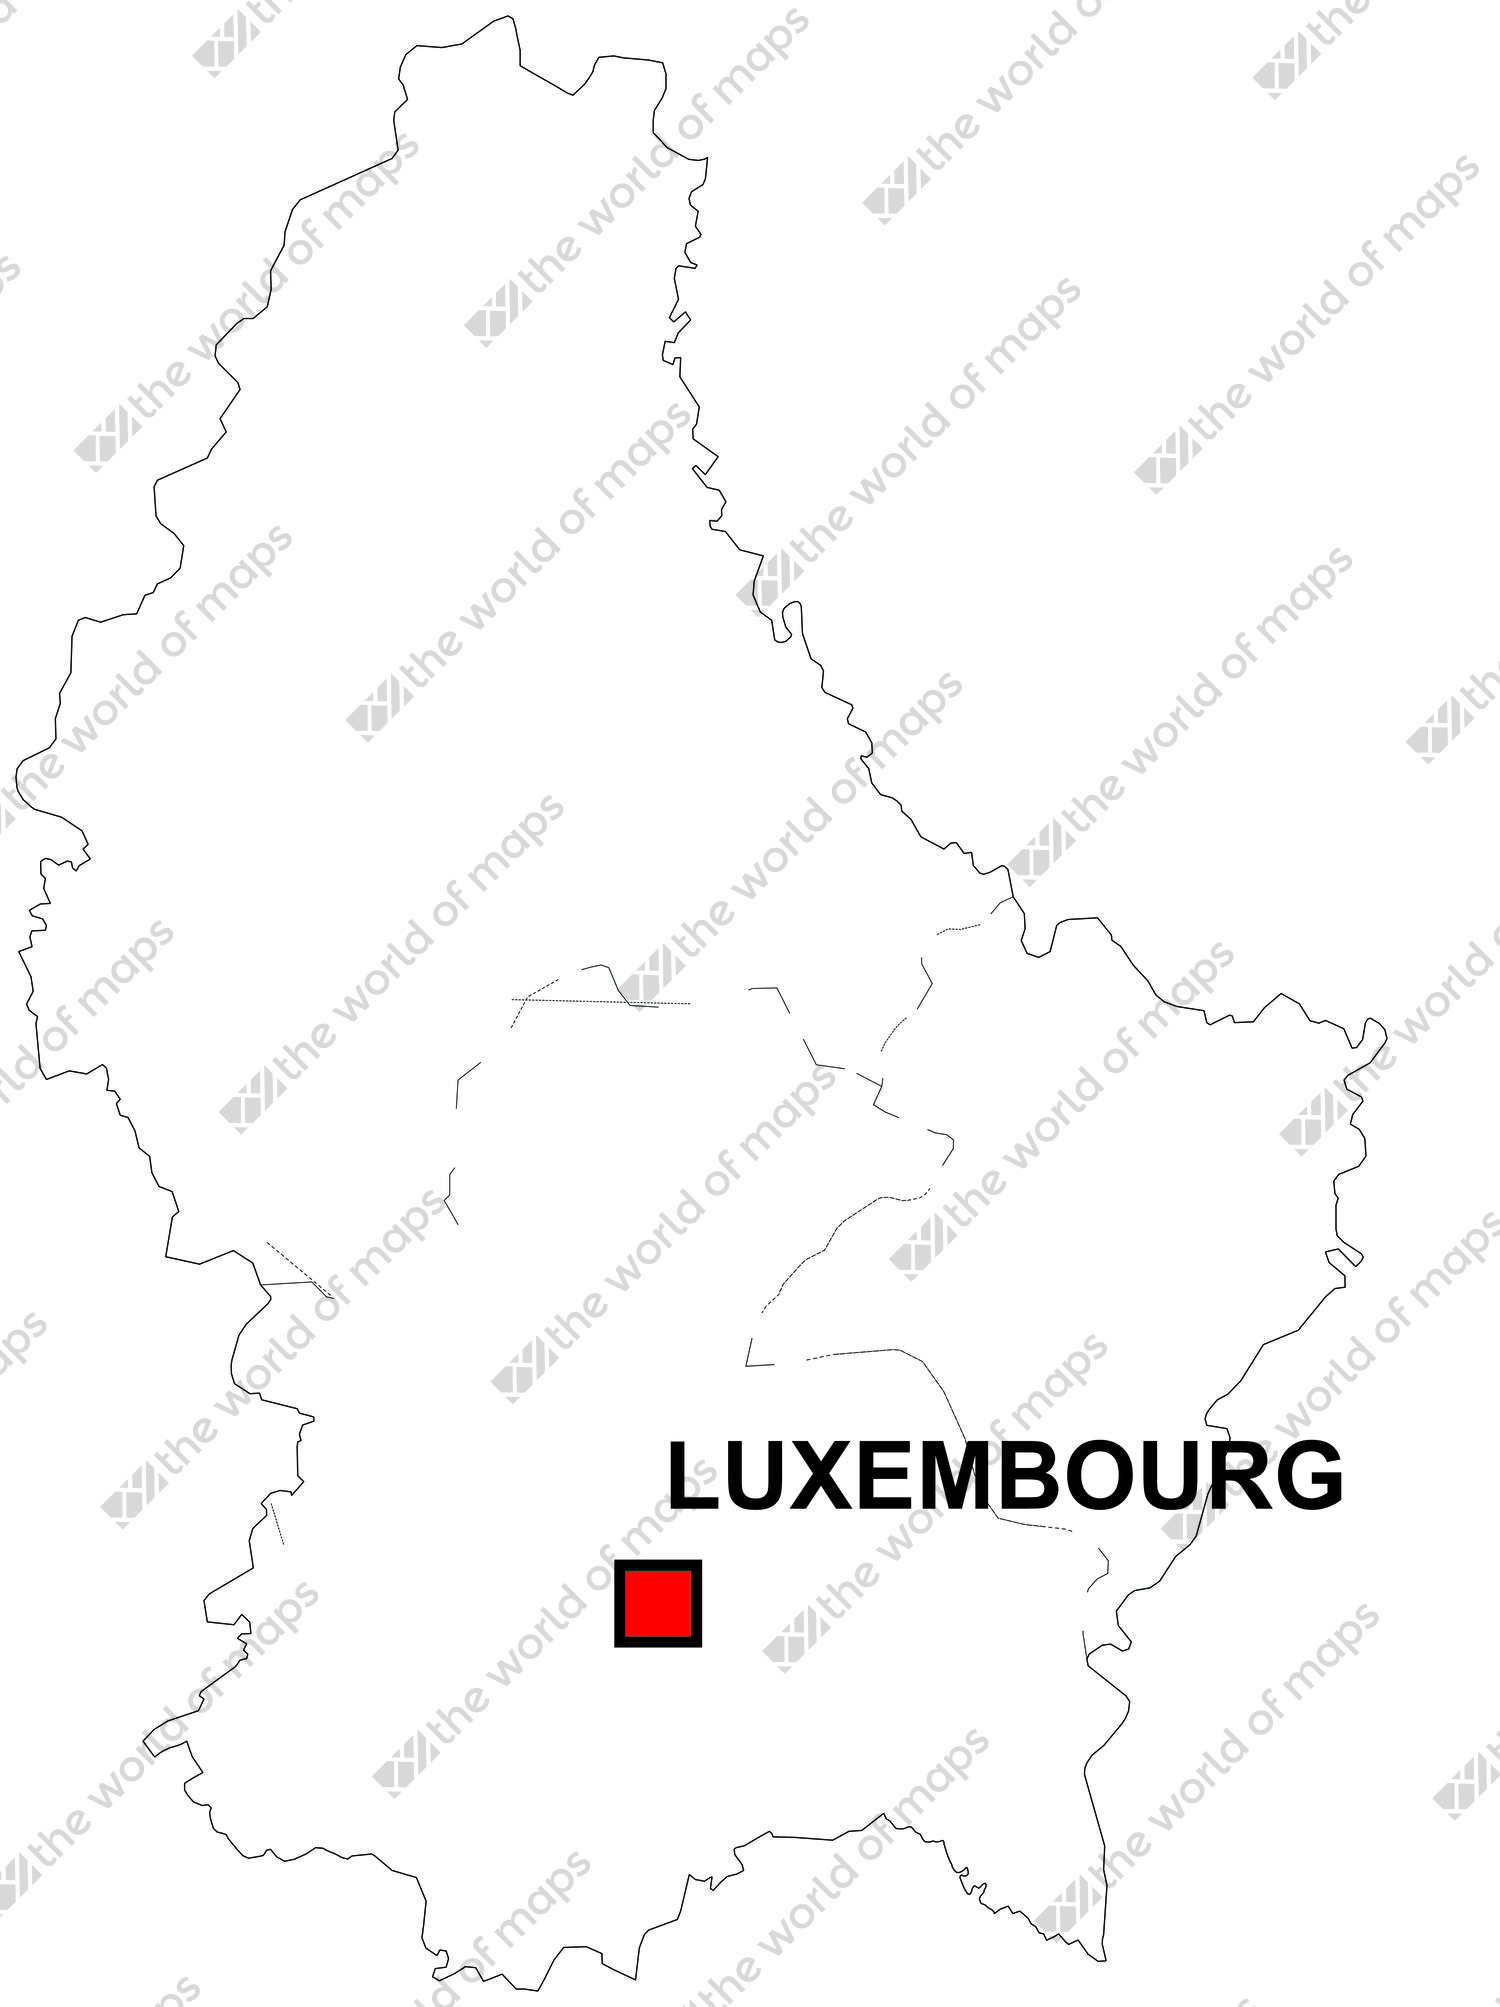 Digital map of Luxembourg (free) | The World of Maps.com